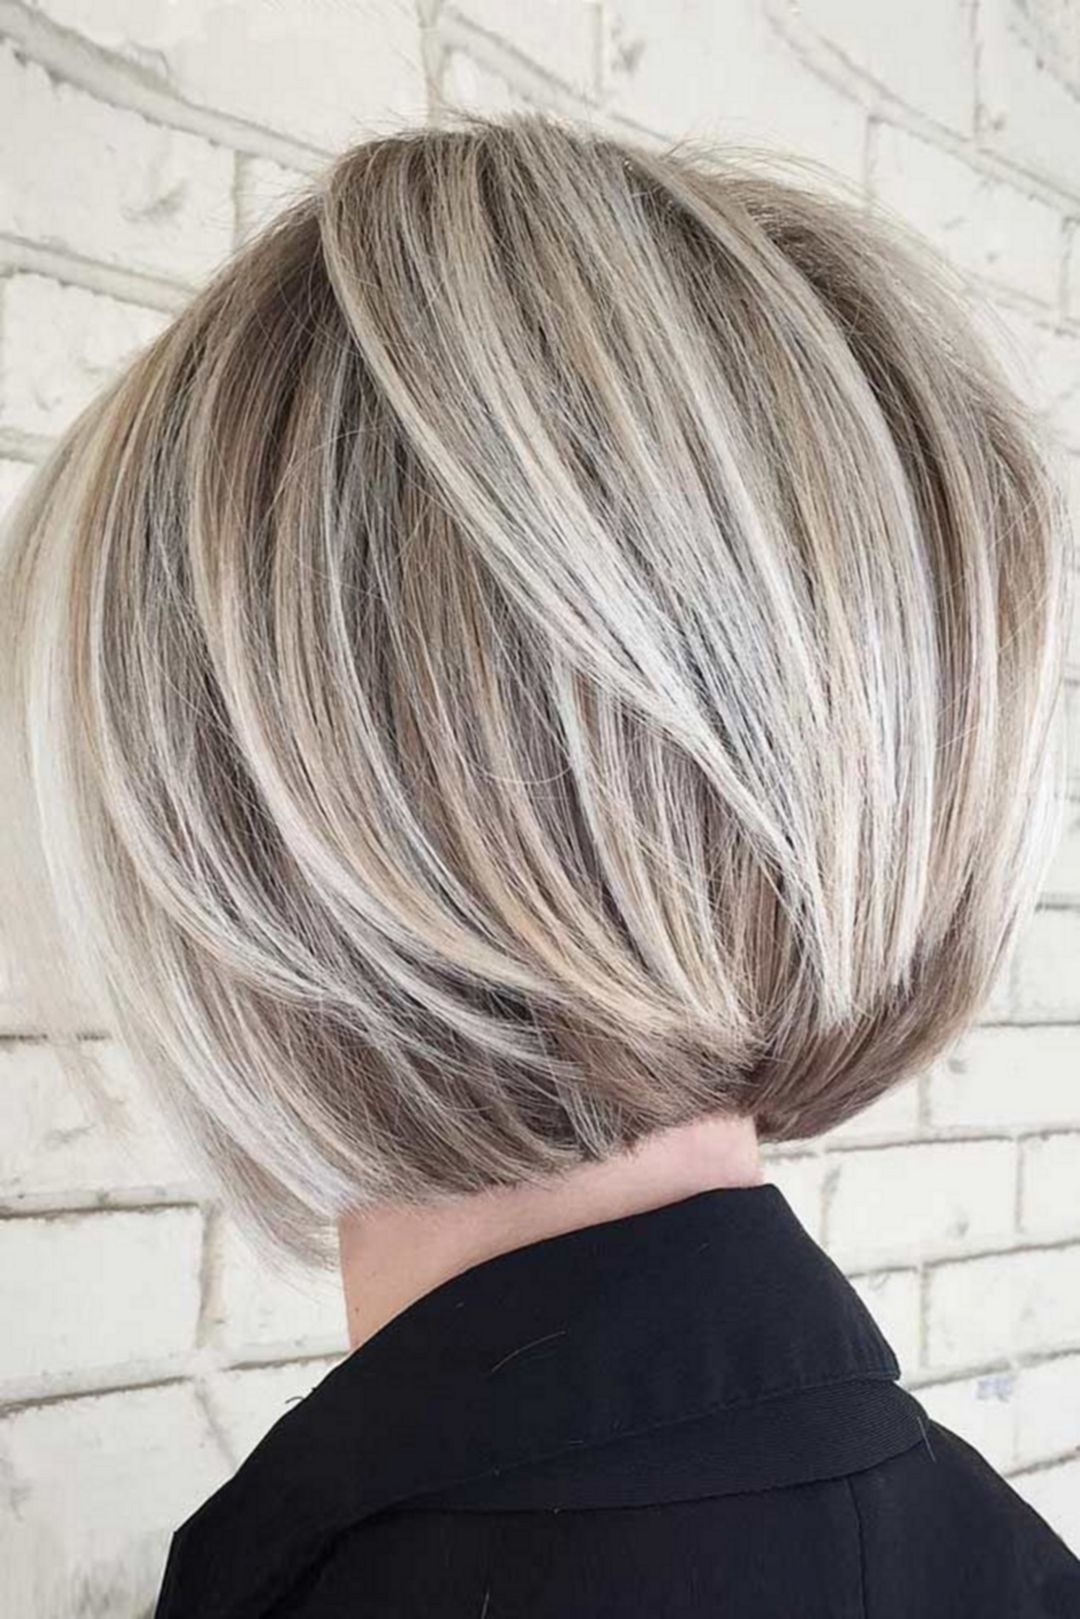 15 awesome short hair cuts for beautiful women hairstyles